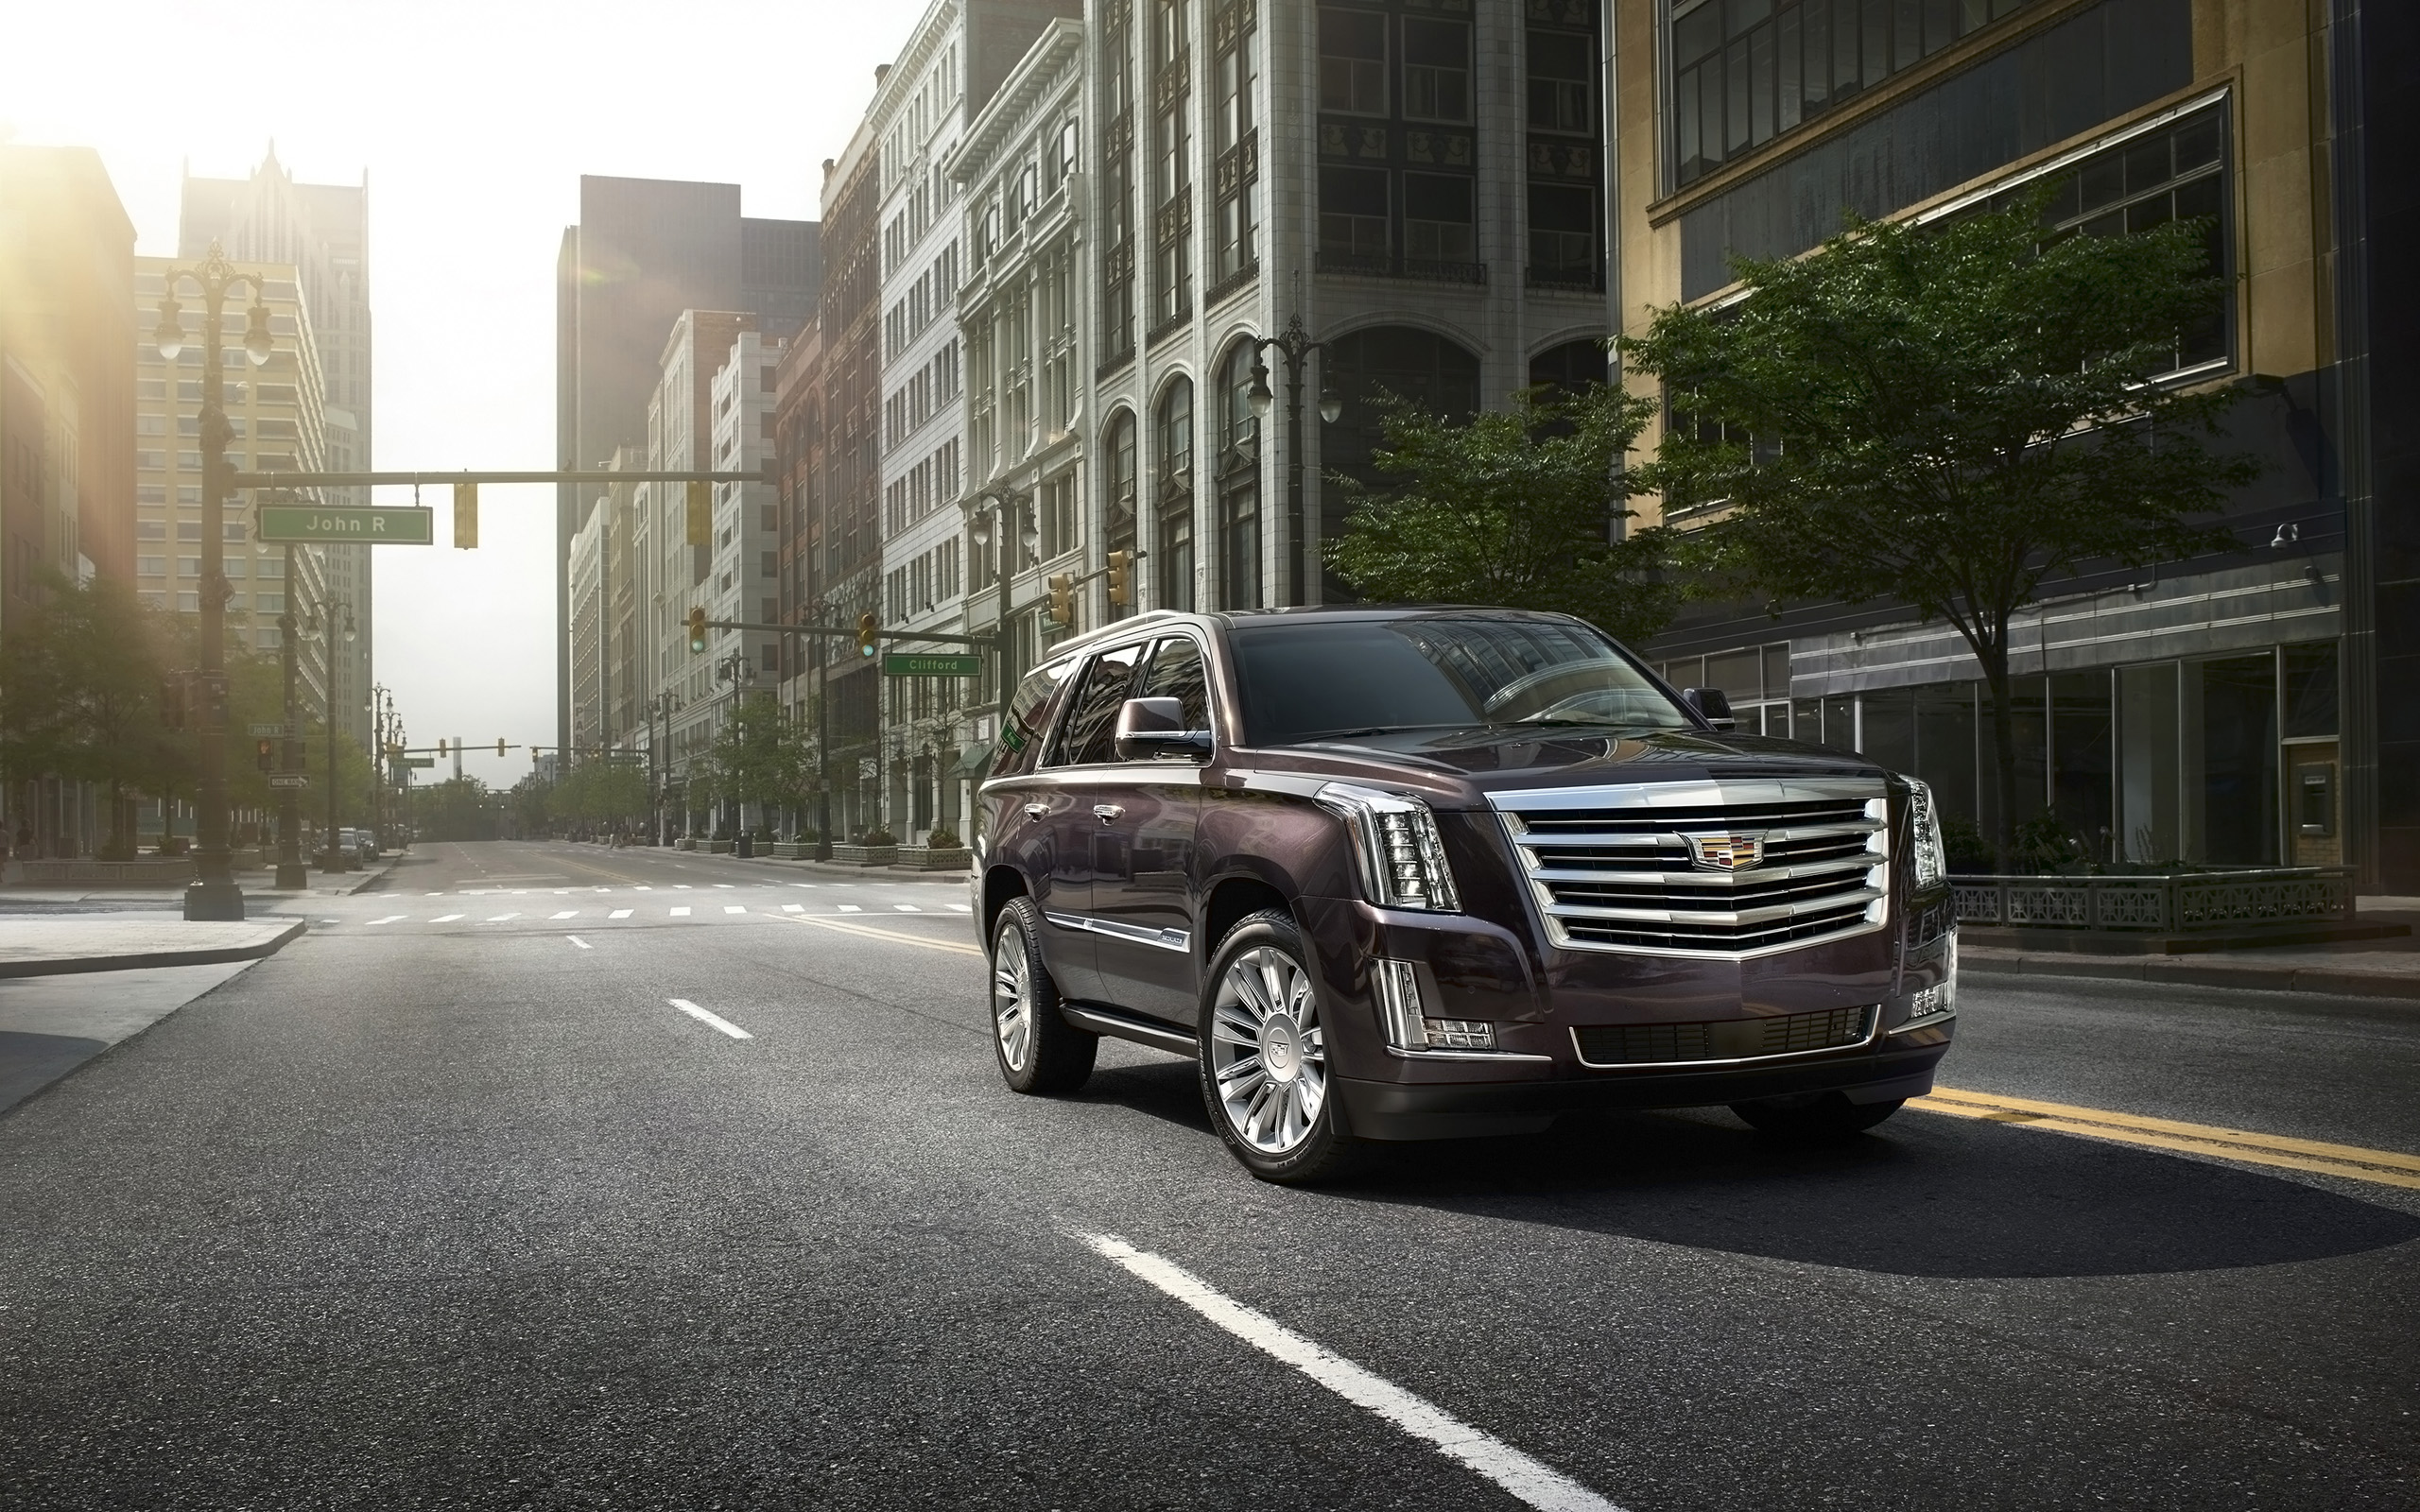 up start and review l cadillac watch youtube escalade